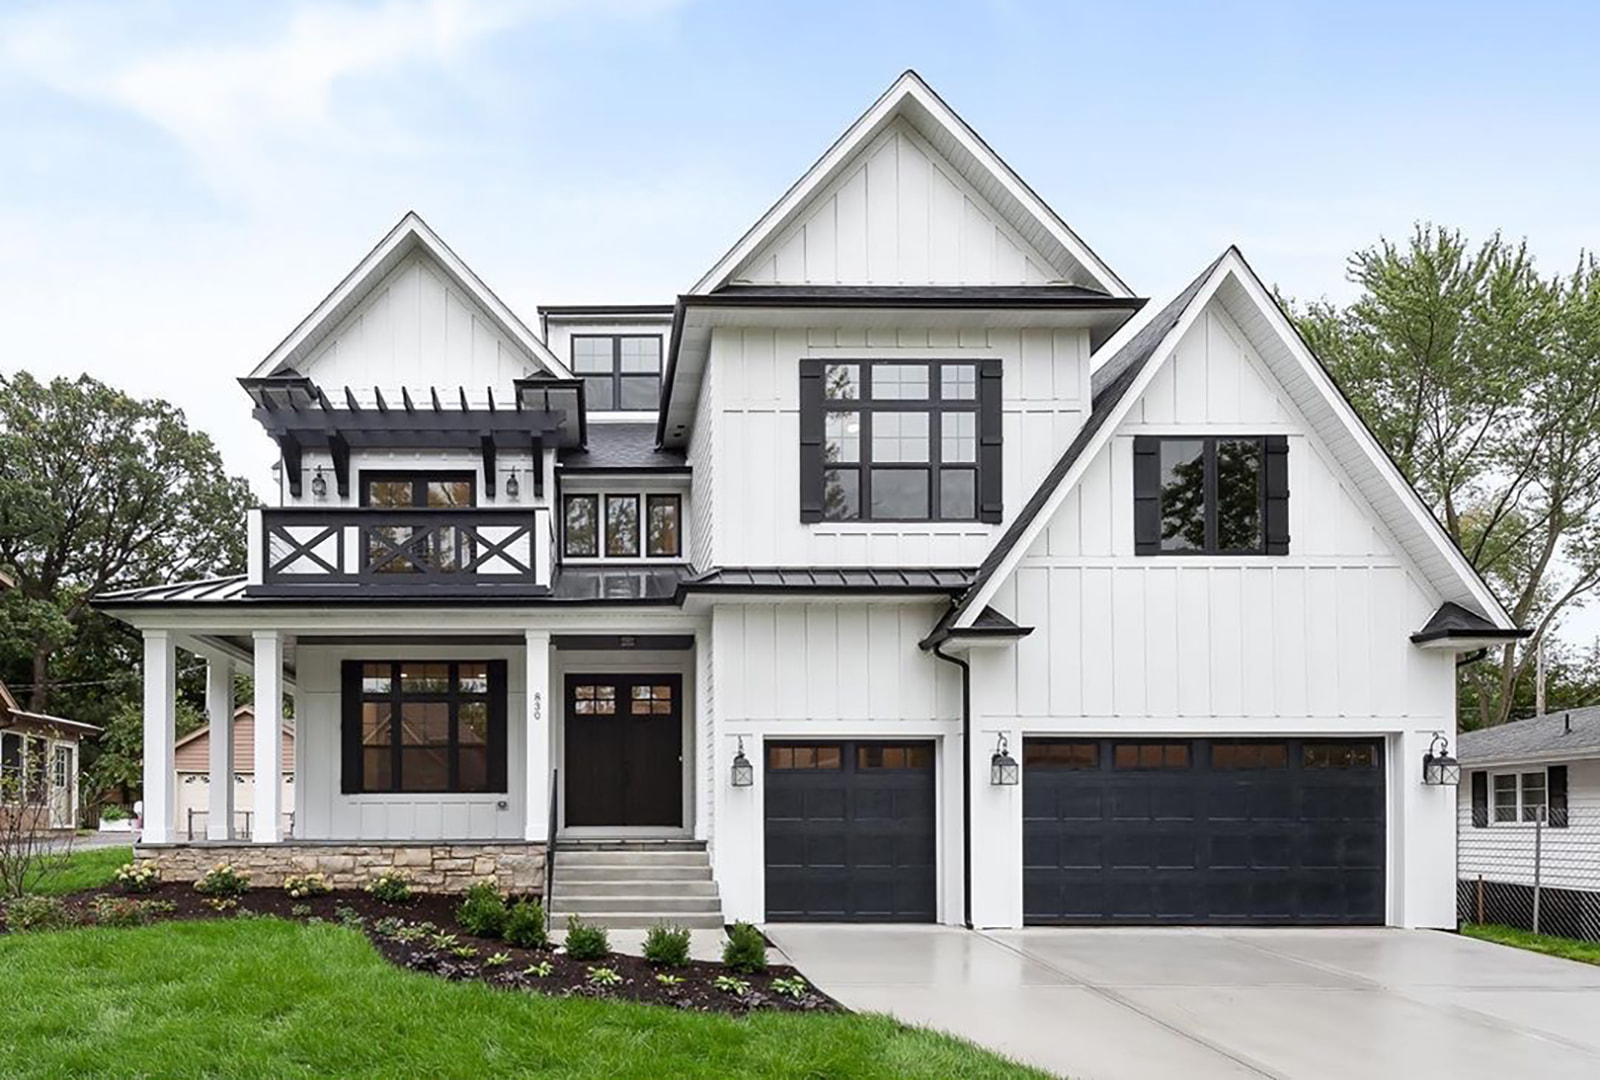 Exterior view of white farmhouse-style home with several black windows.